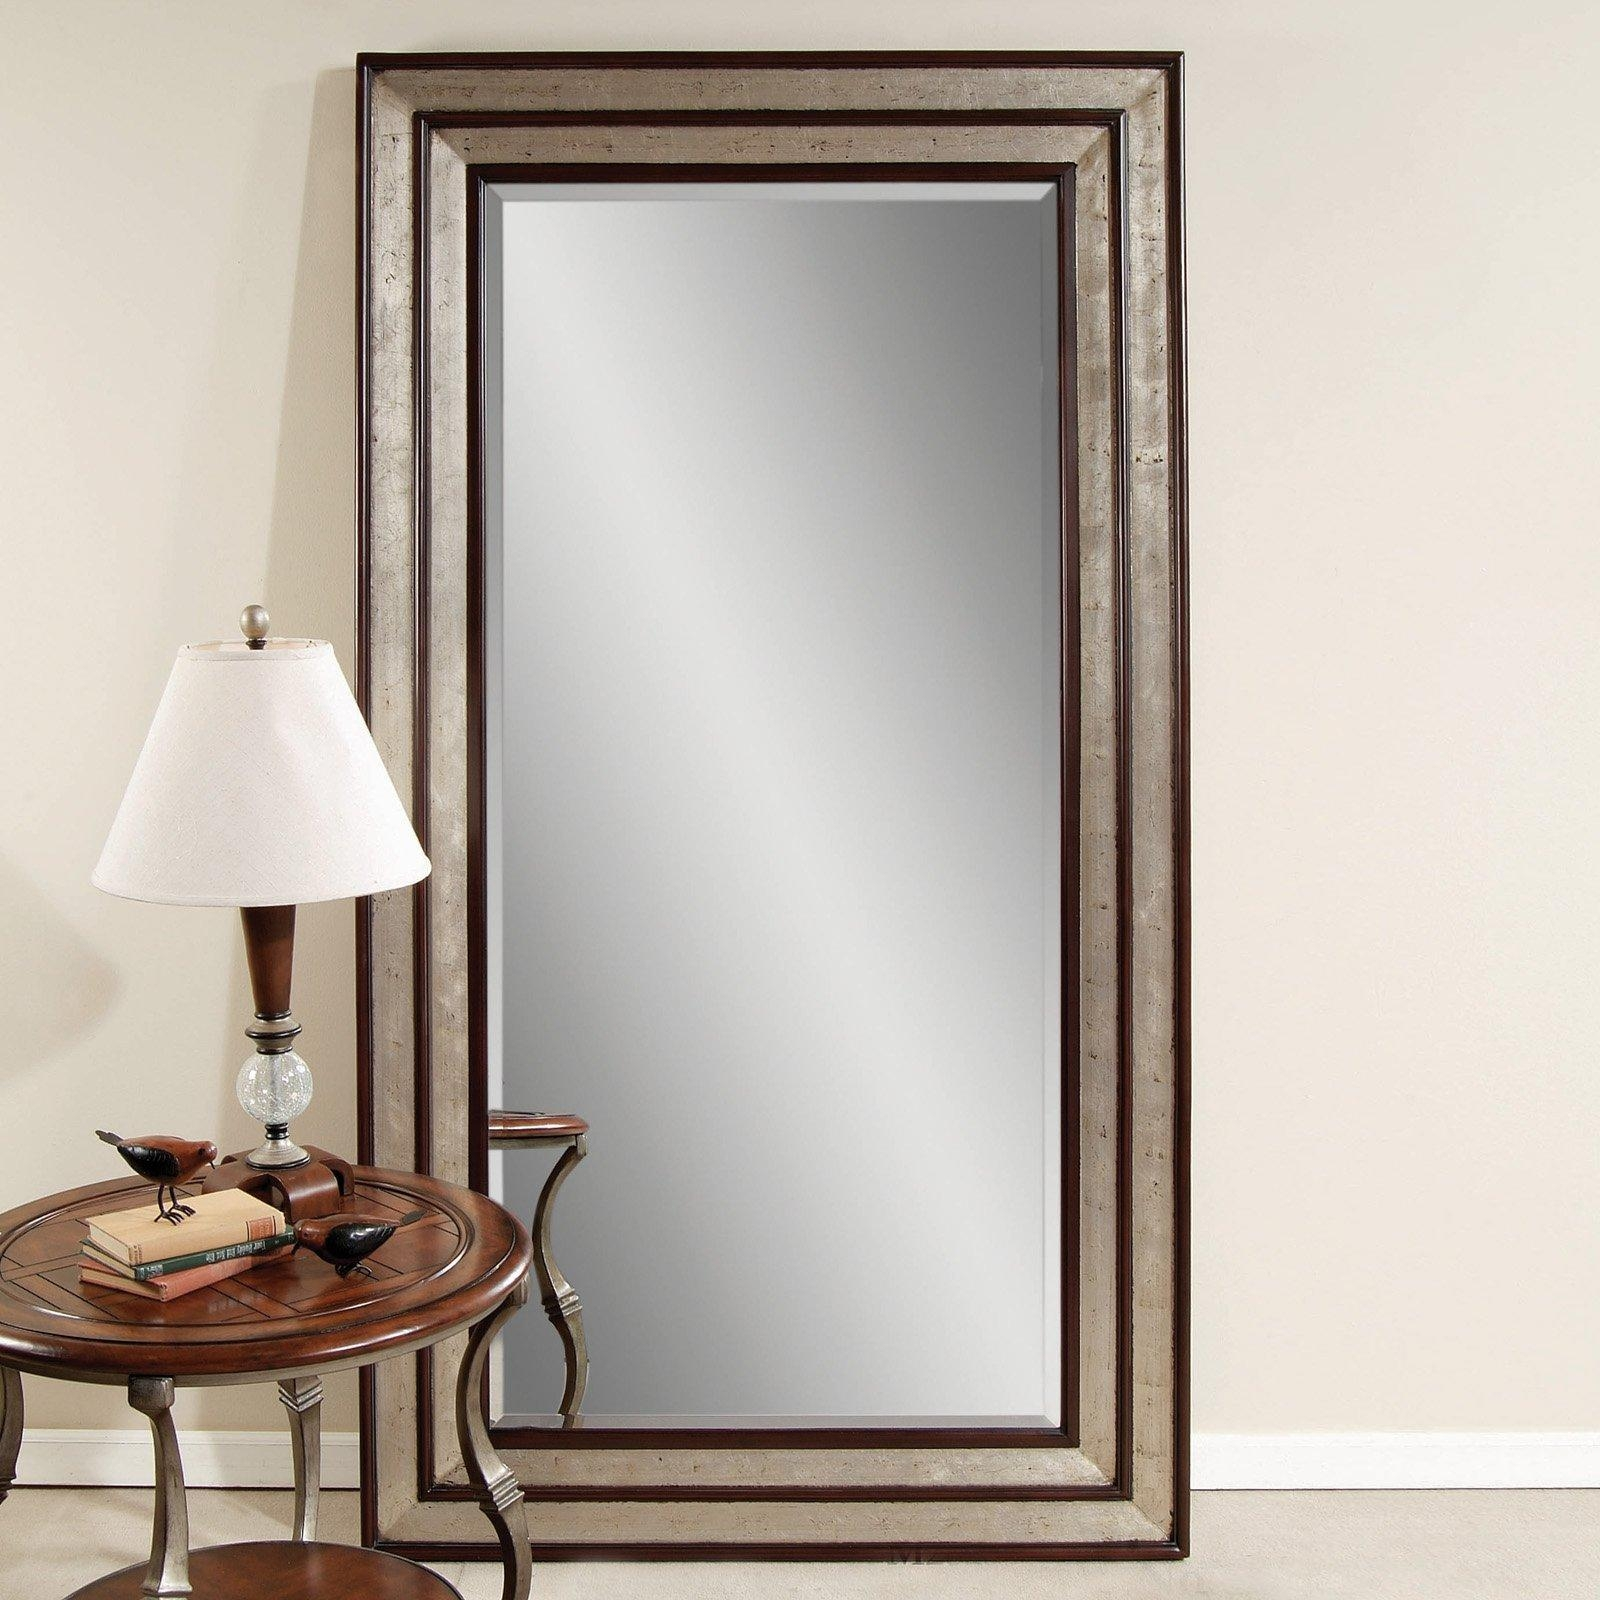 20 collection of framed floor mirrors mirror ideas for Framed floor mirror